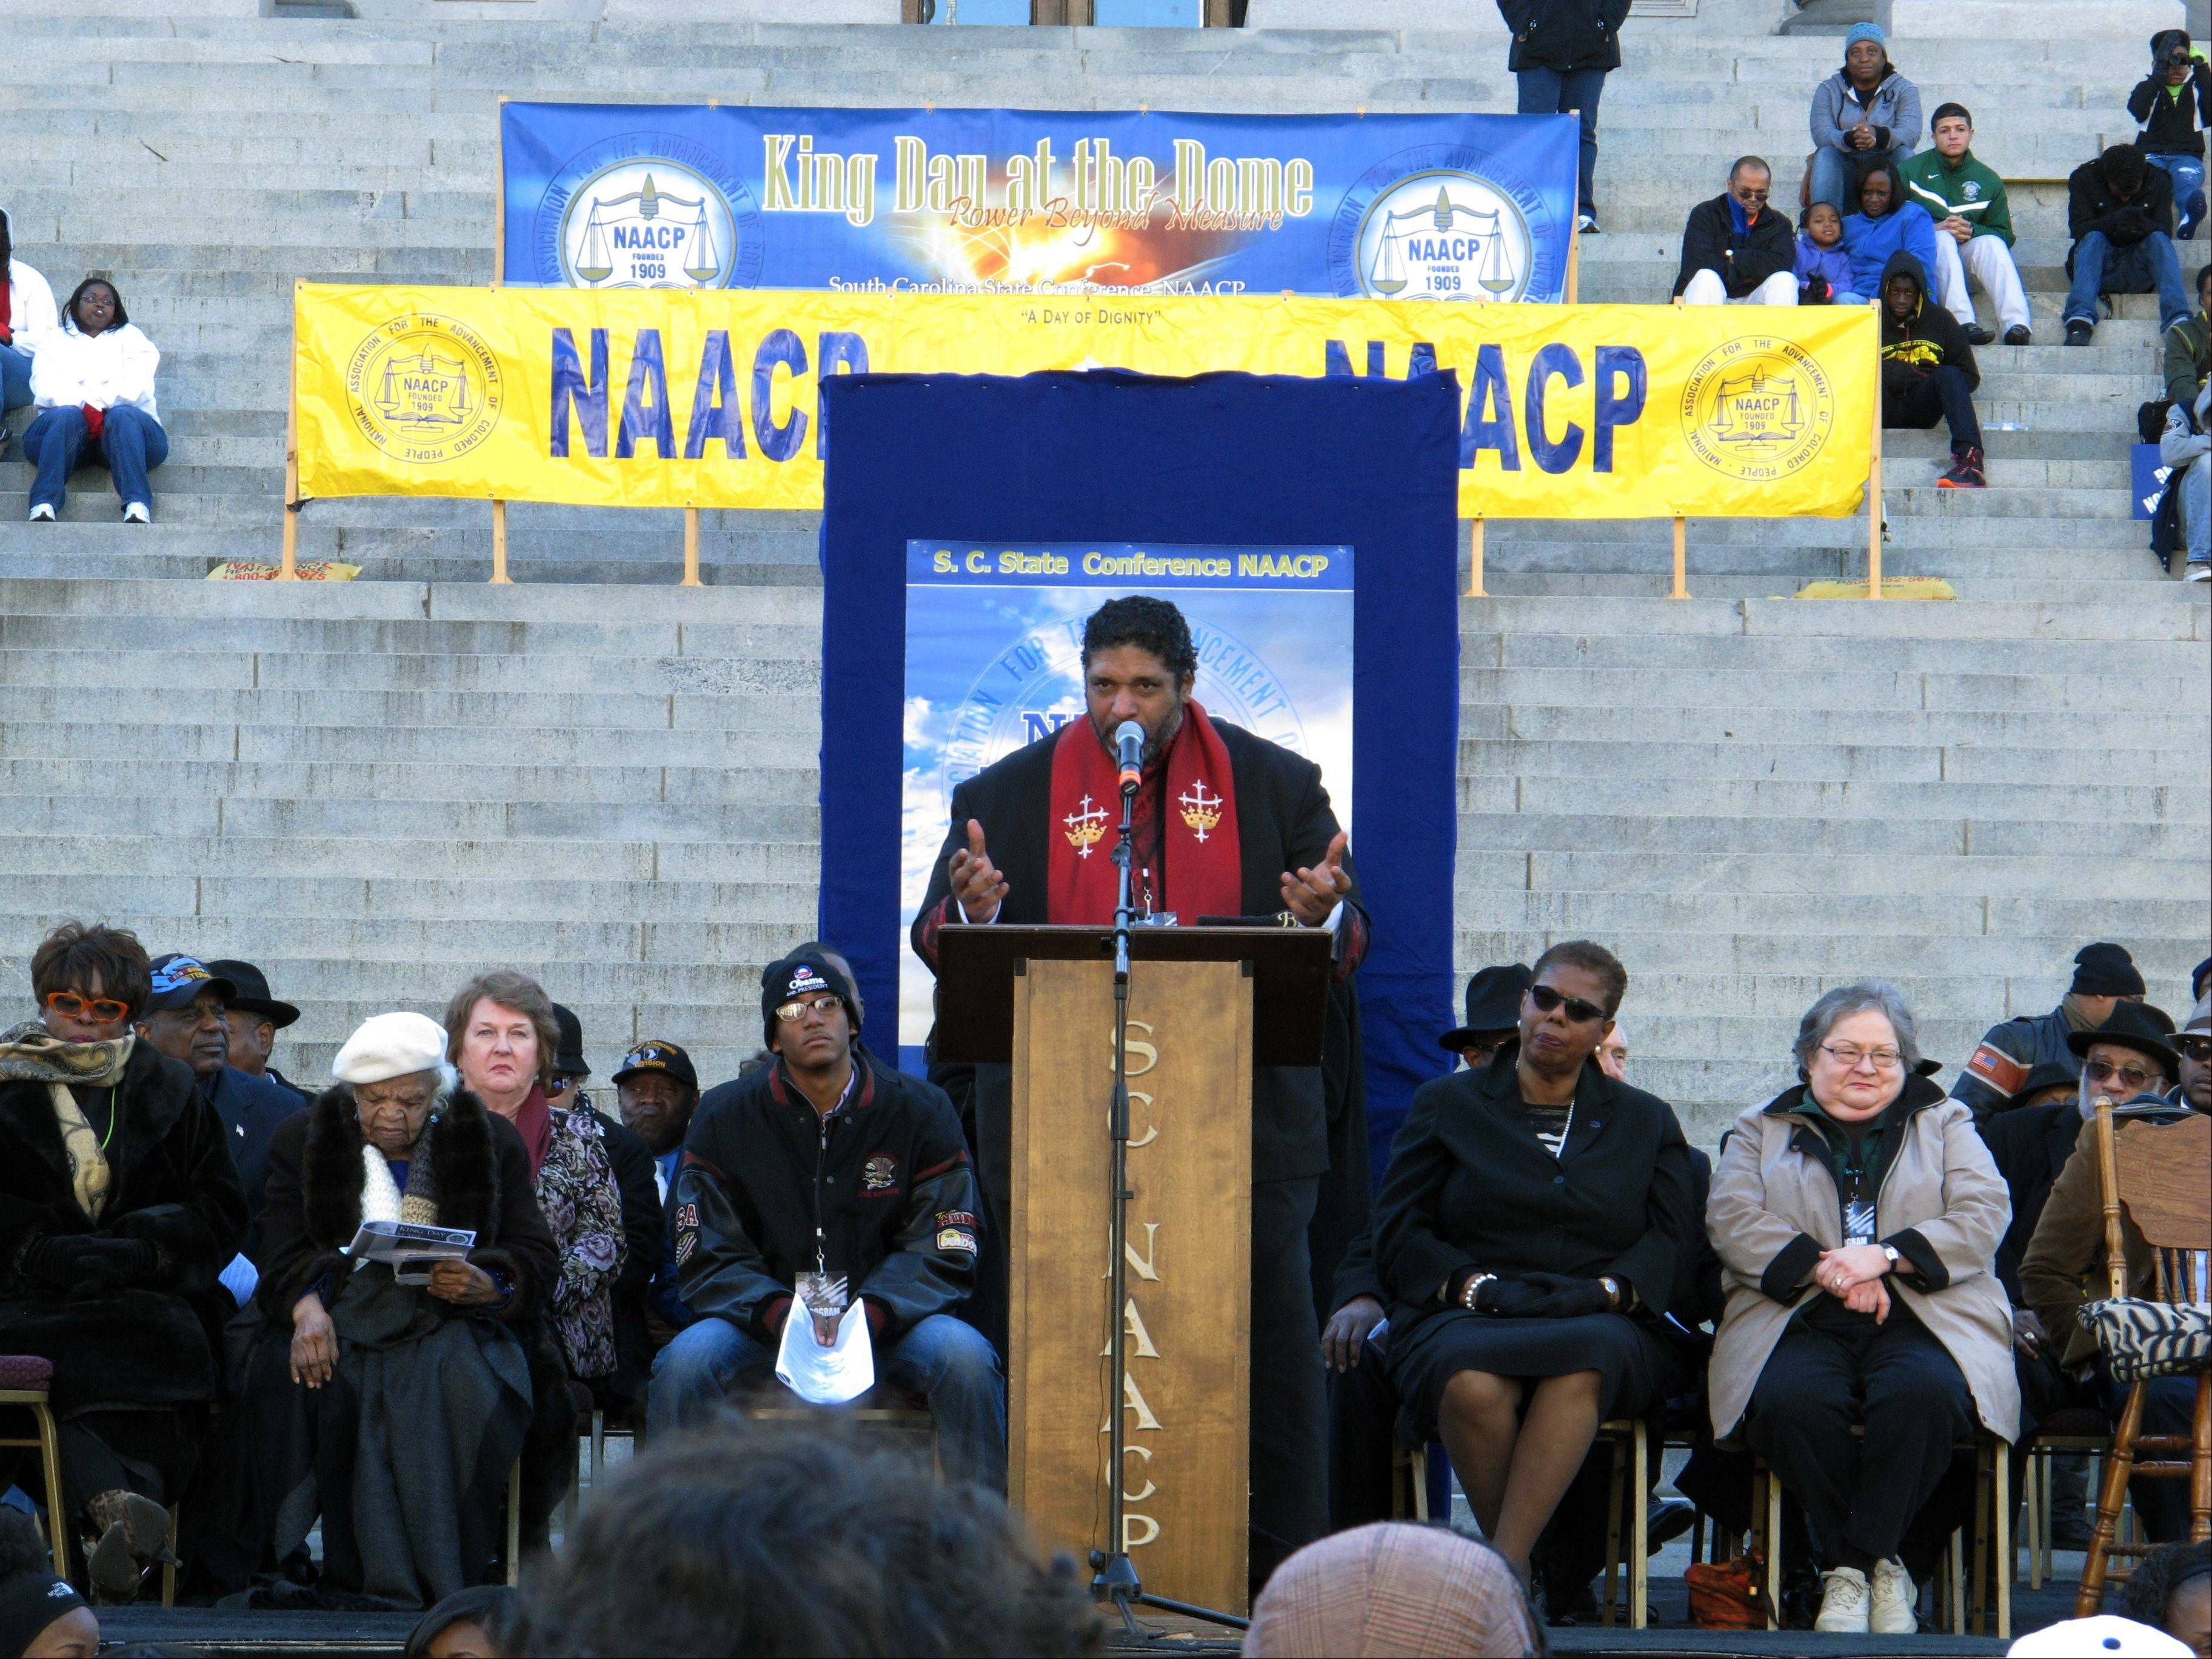 North Carolina NAACP President William Barber talks about fighting for social justice at the King Day rally on Monday, Jan. 20, 2014, in Columbia, S.C. Barber told the crowd of a few thousand people that what conservatives leaders have done to the country is mighty low, but he thinks they are ready to find higher ground.